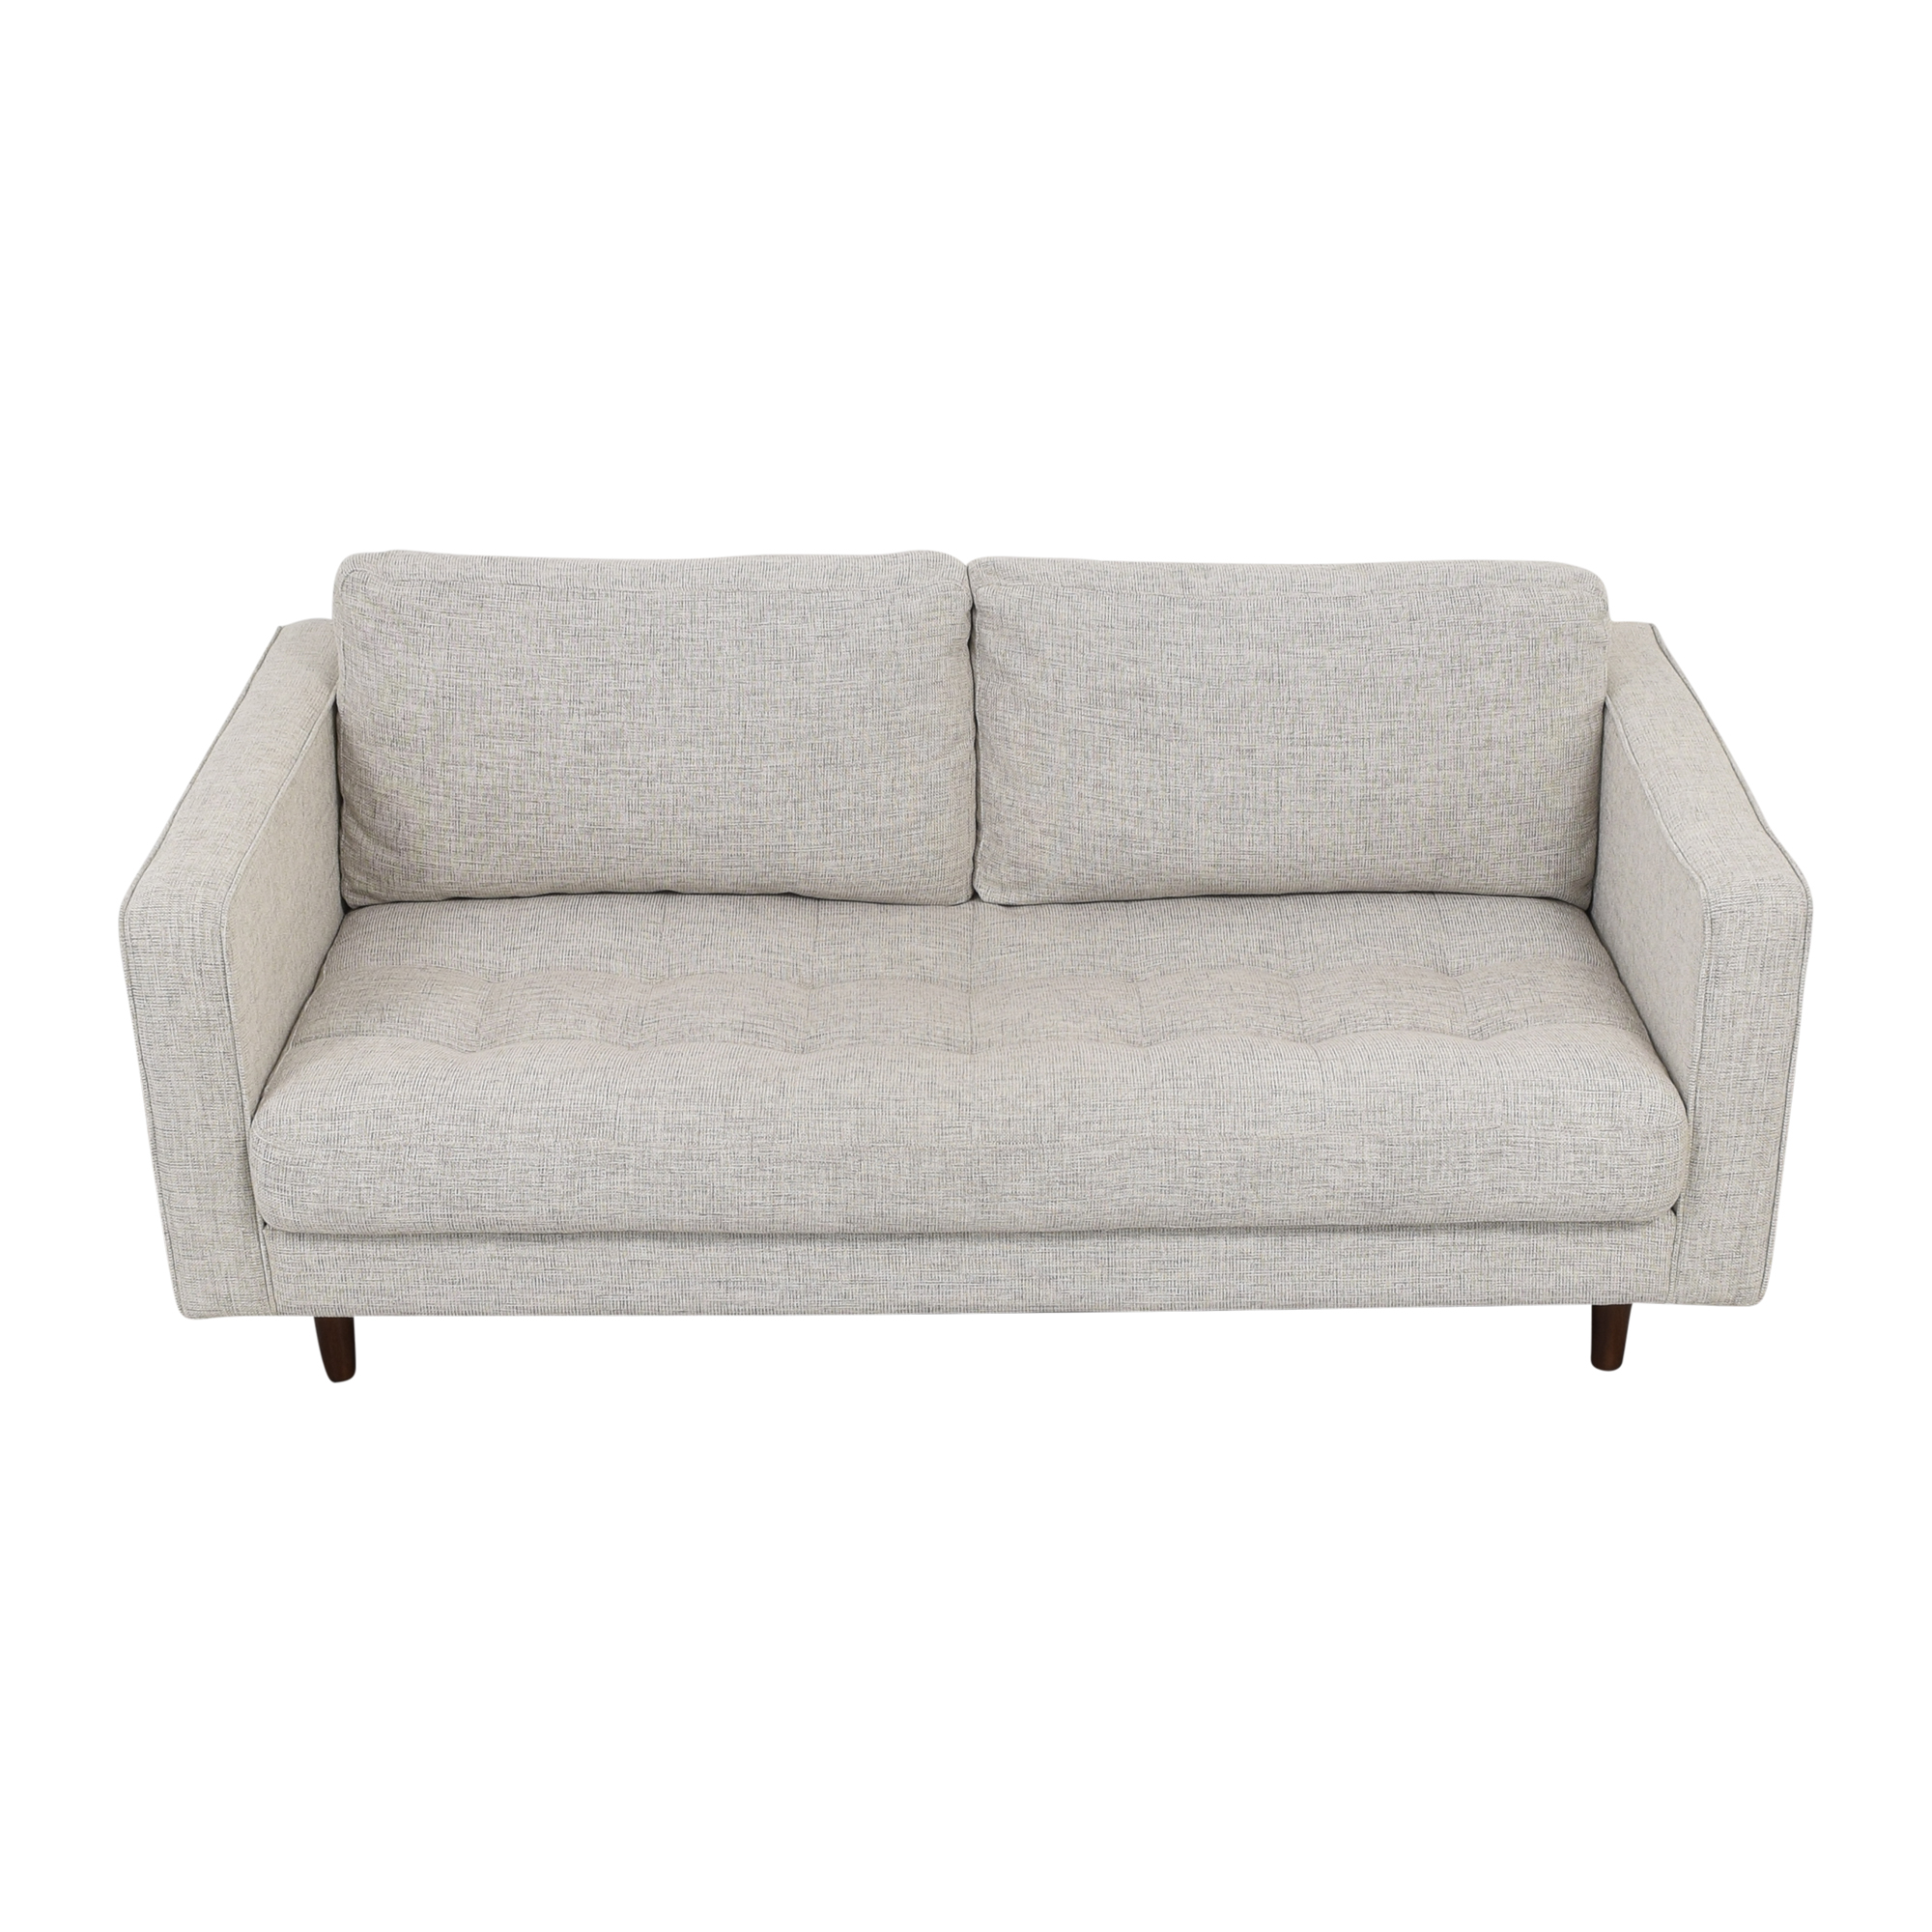 Article Article Sven Sofa with Ottoman on sale